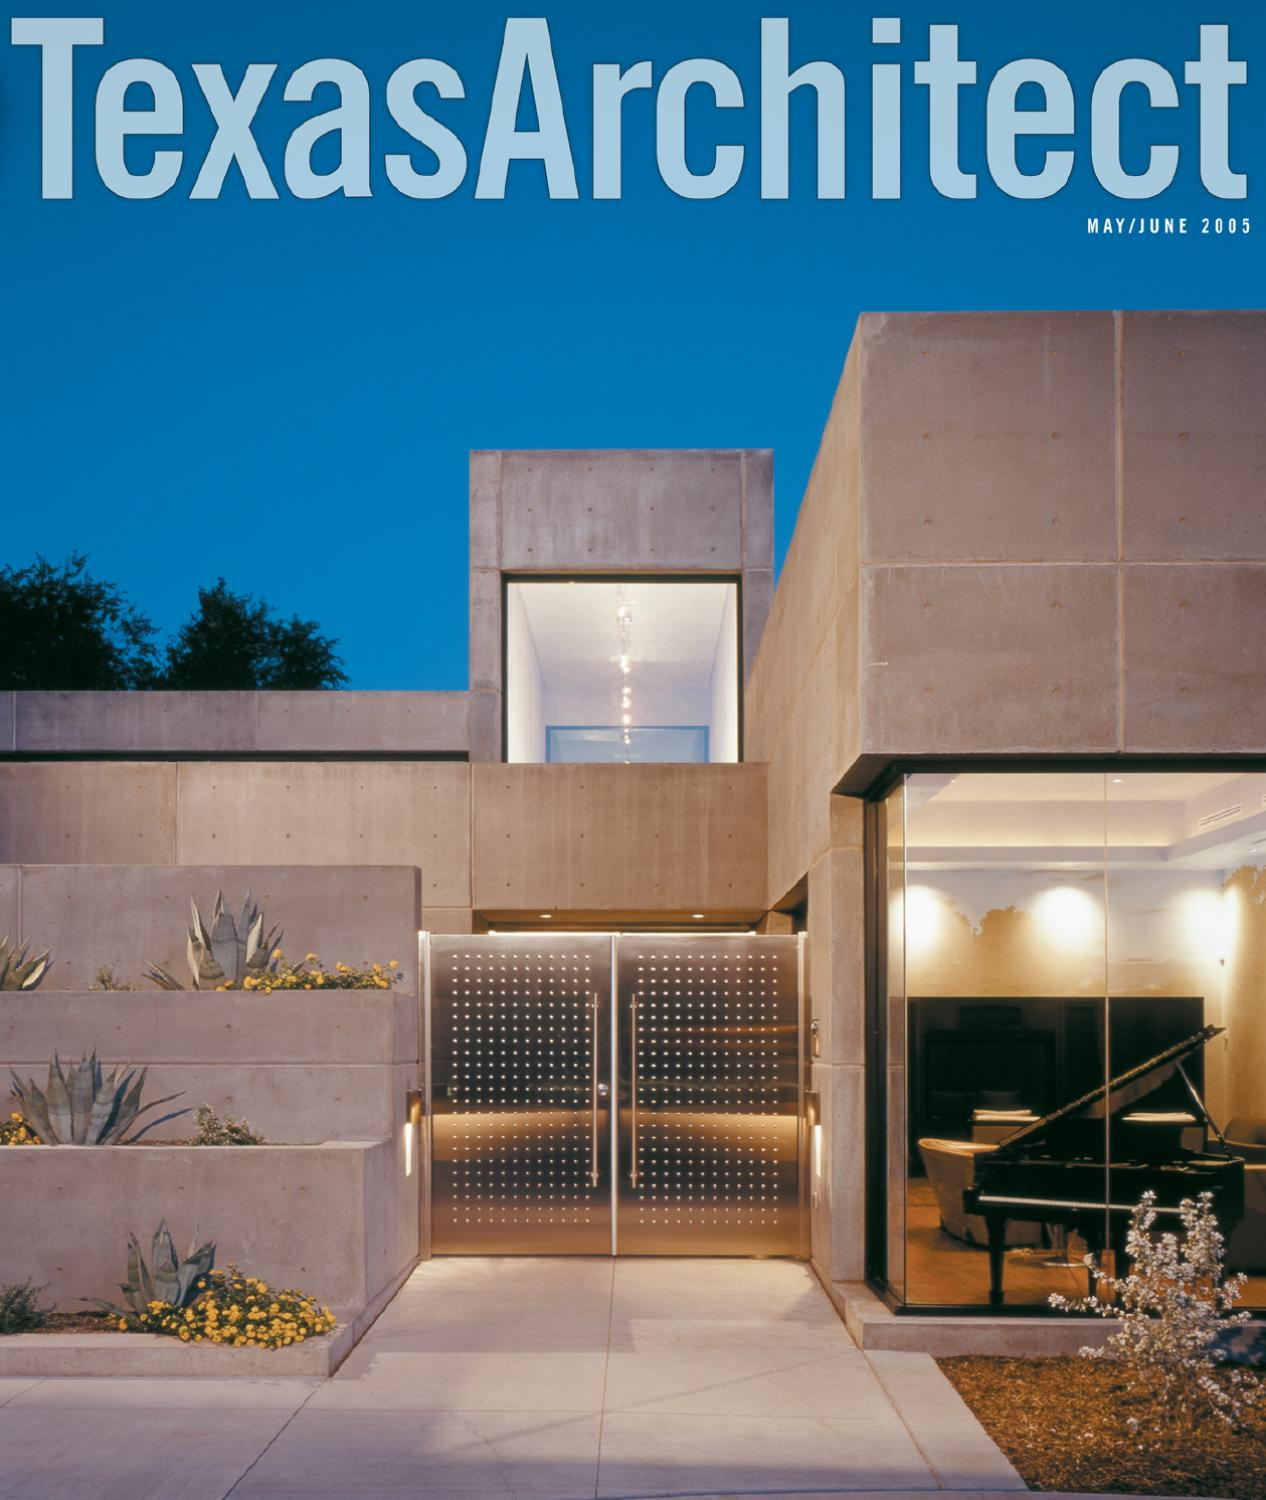 Texas Architect May/June 2005 By Texas Society Of Architects   Issuu